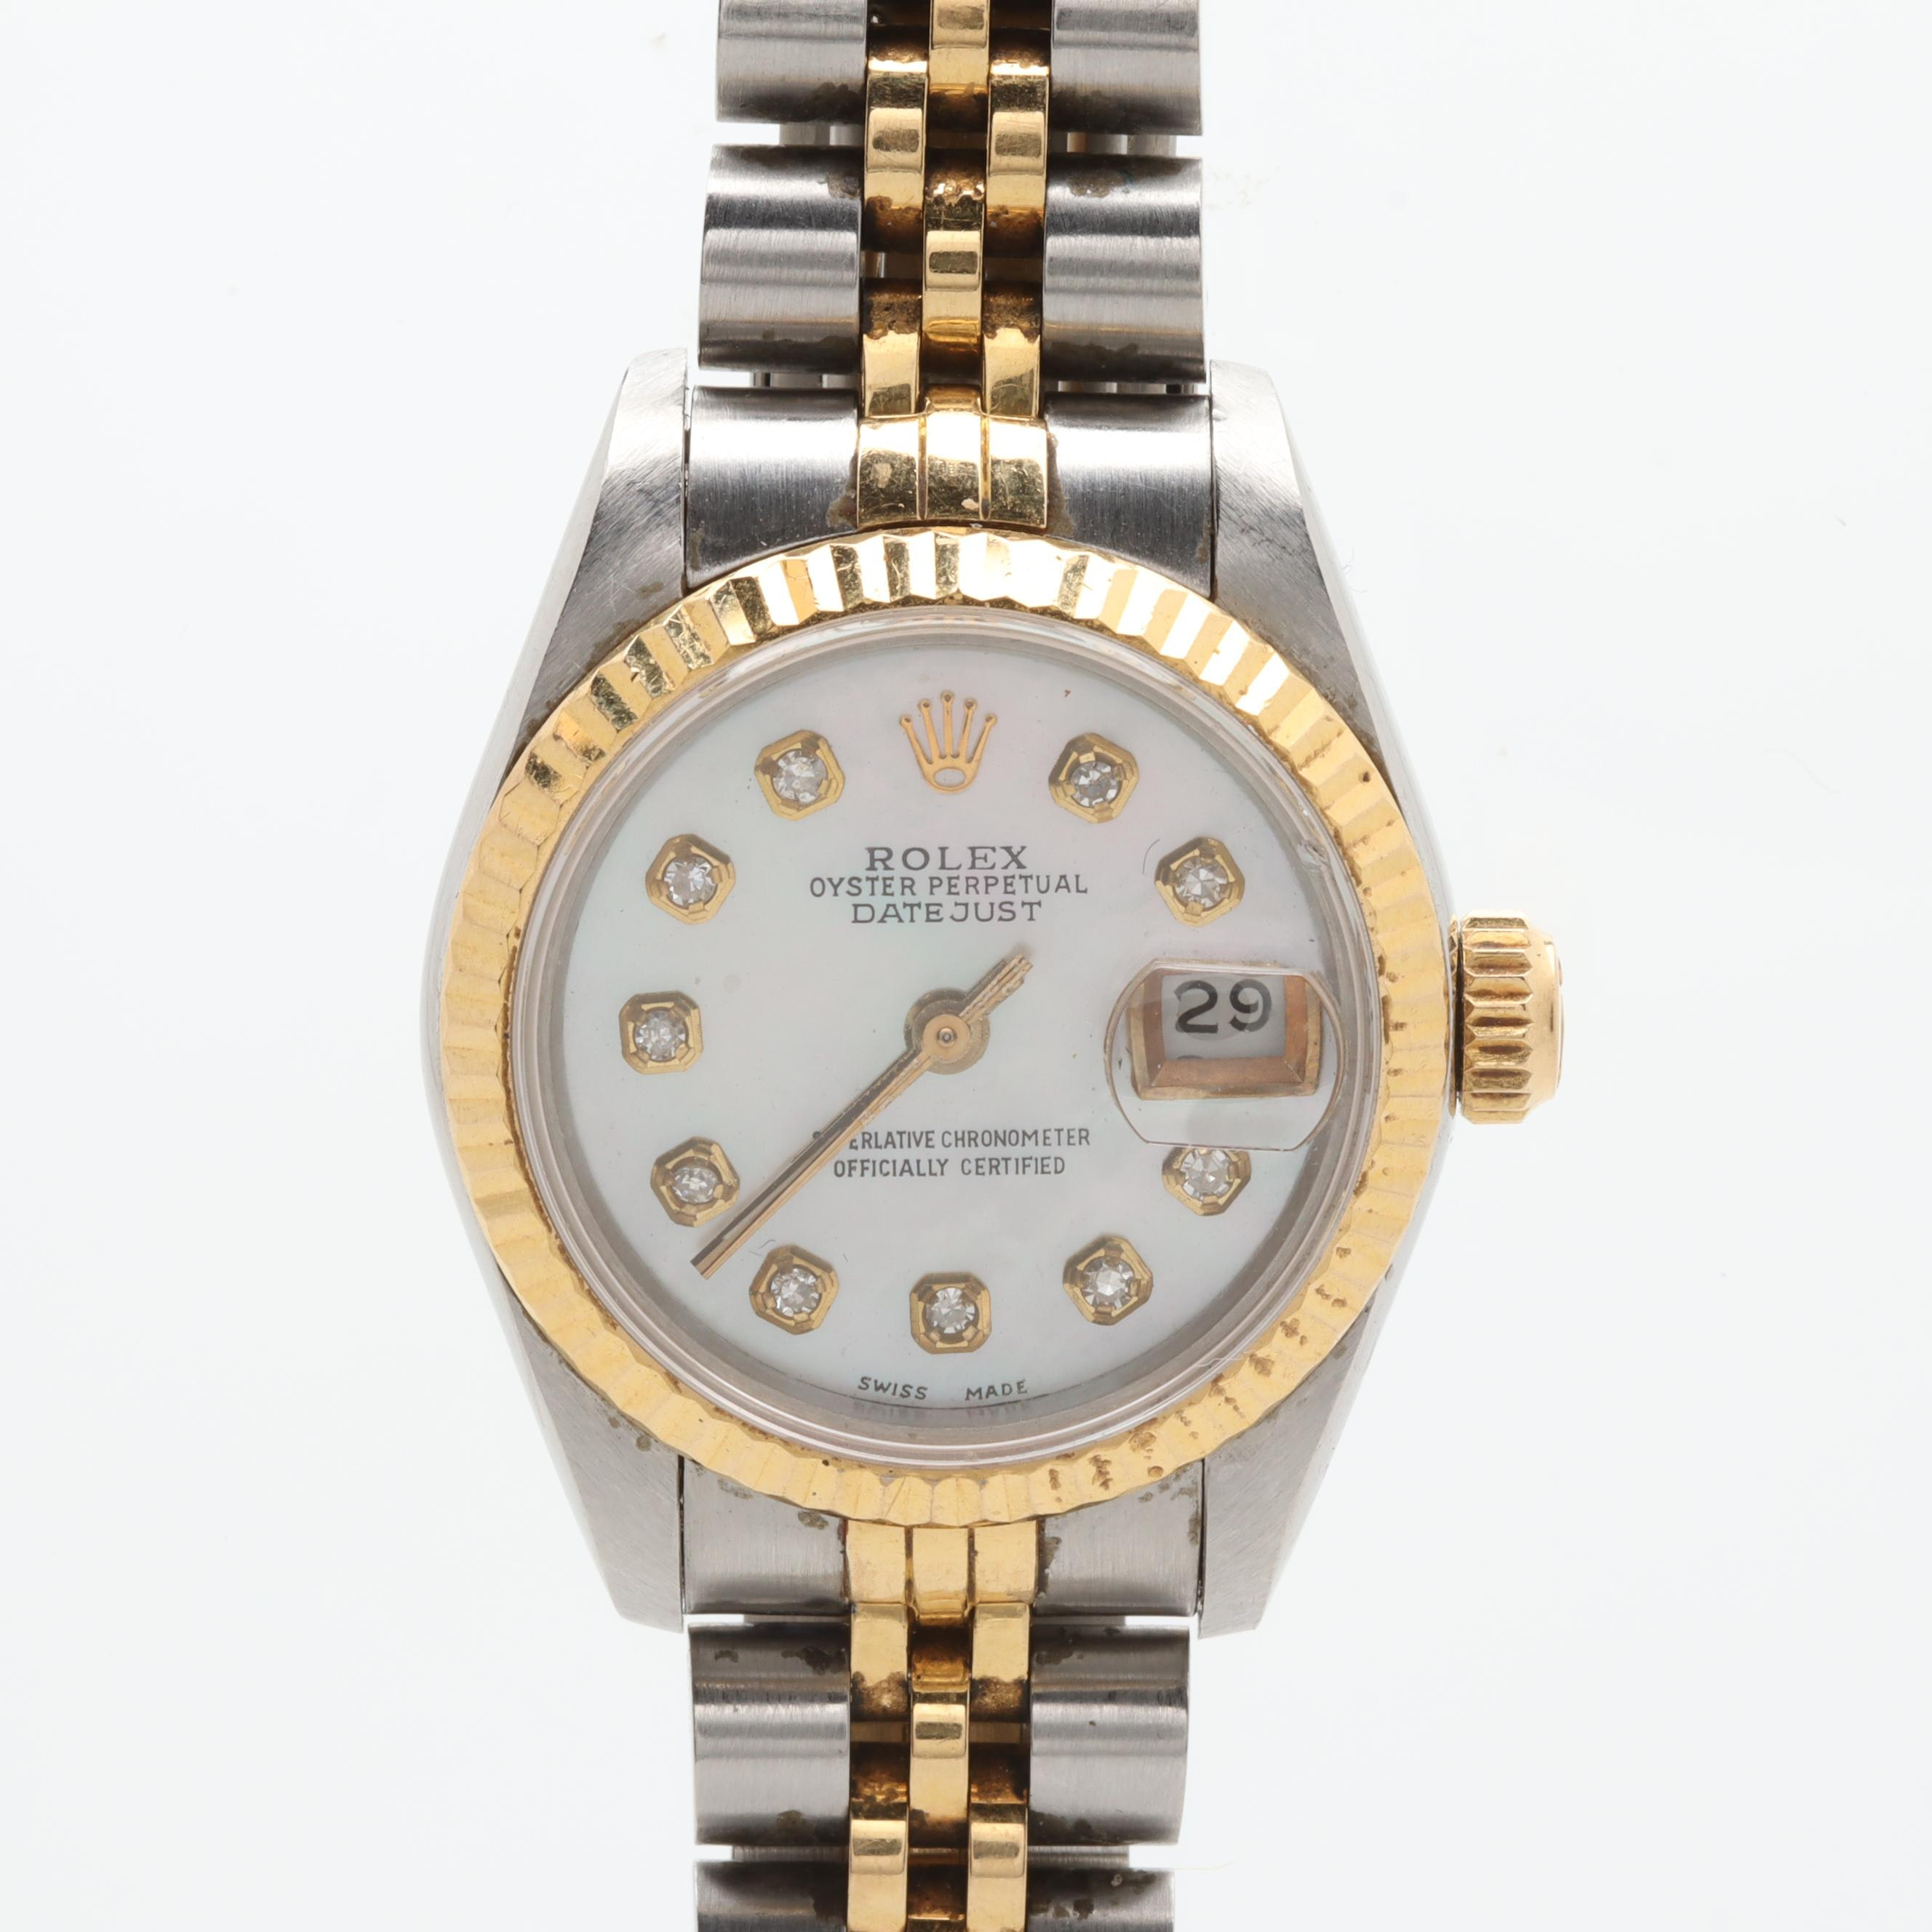 Circa 1986 Rolex Diamond and Mother of Pearl Wristwatch with 18K Accents